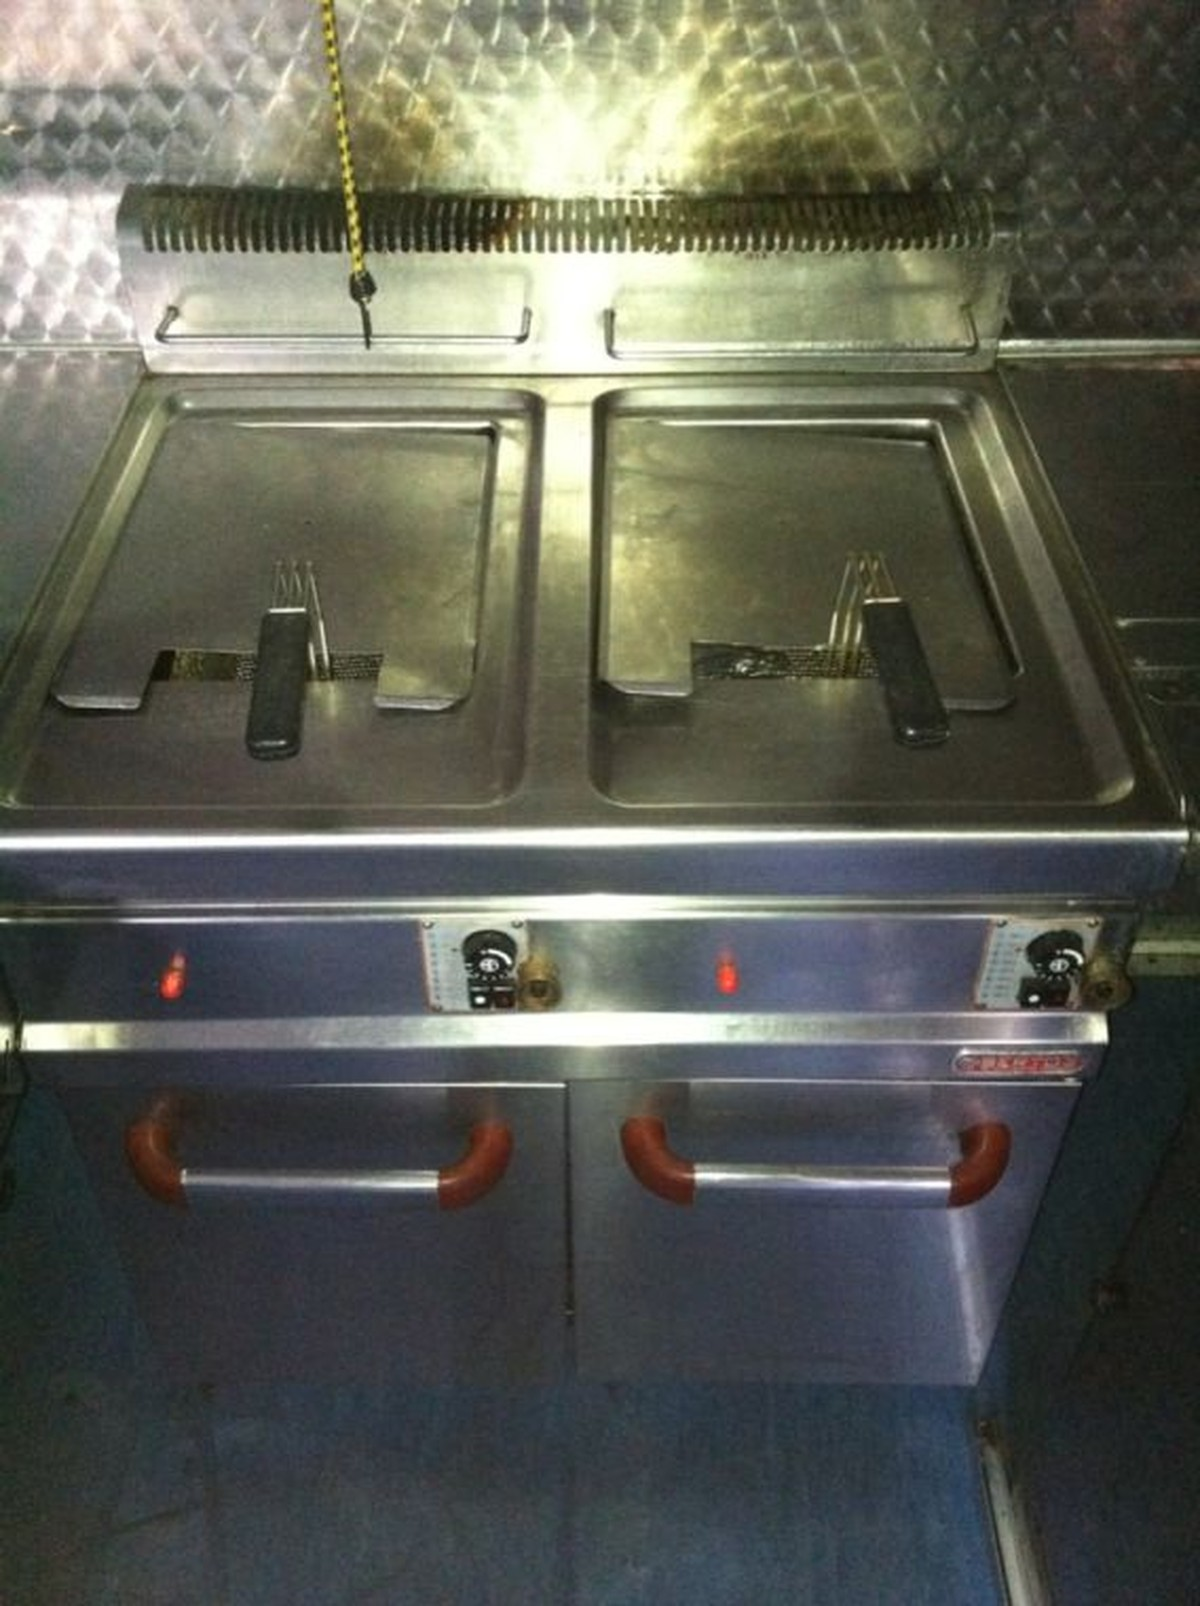 secondhand catering equipment gas fryers bertos gl20. Black Bedroom Furniture Sets. Home Design Ideas